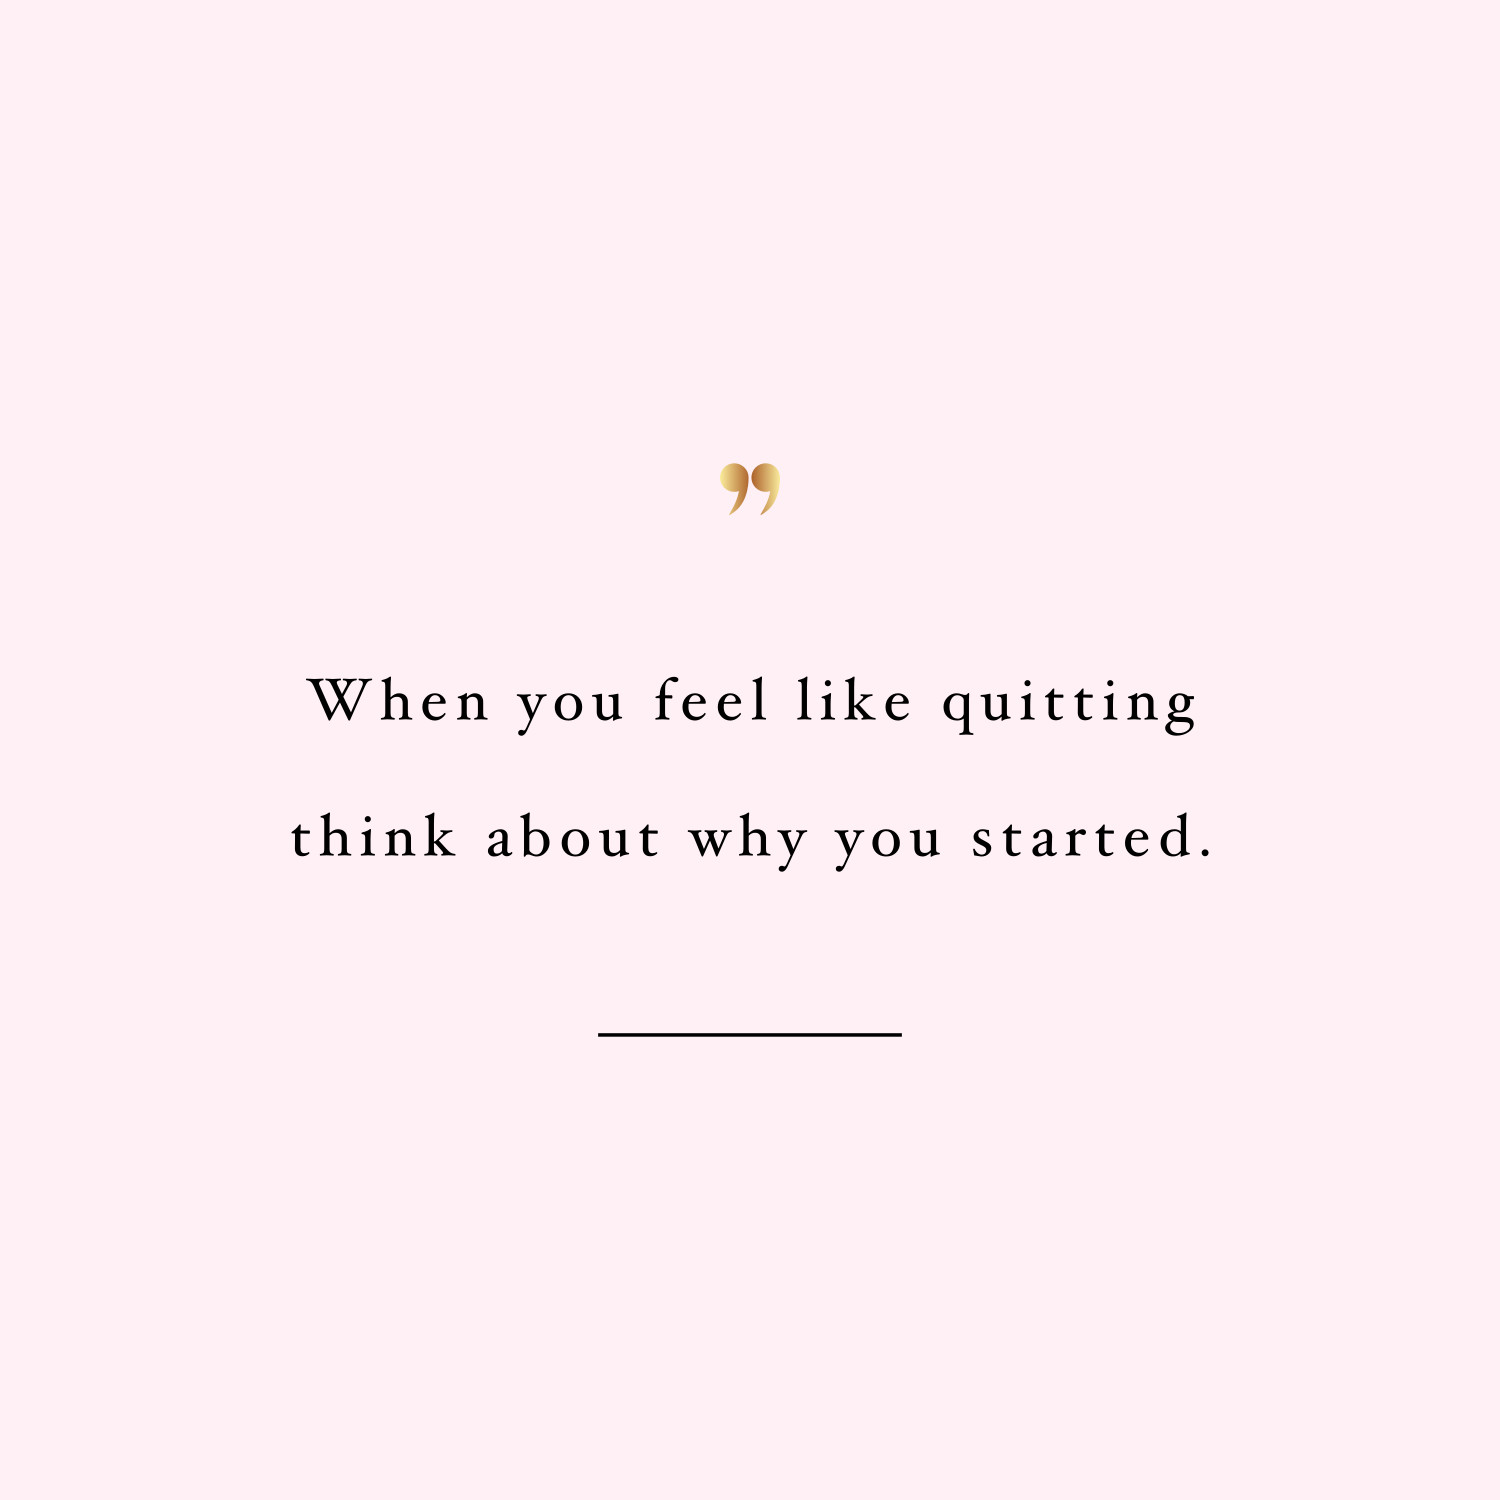 Don't quit! Browse our collection of inspirational fitness quotes and get instant workout and exercise motivation. Stay focused and get fit, healthy and happy! https://www.spotebi.com/workout-motivation/fitness-quote-dont-quit/